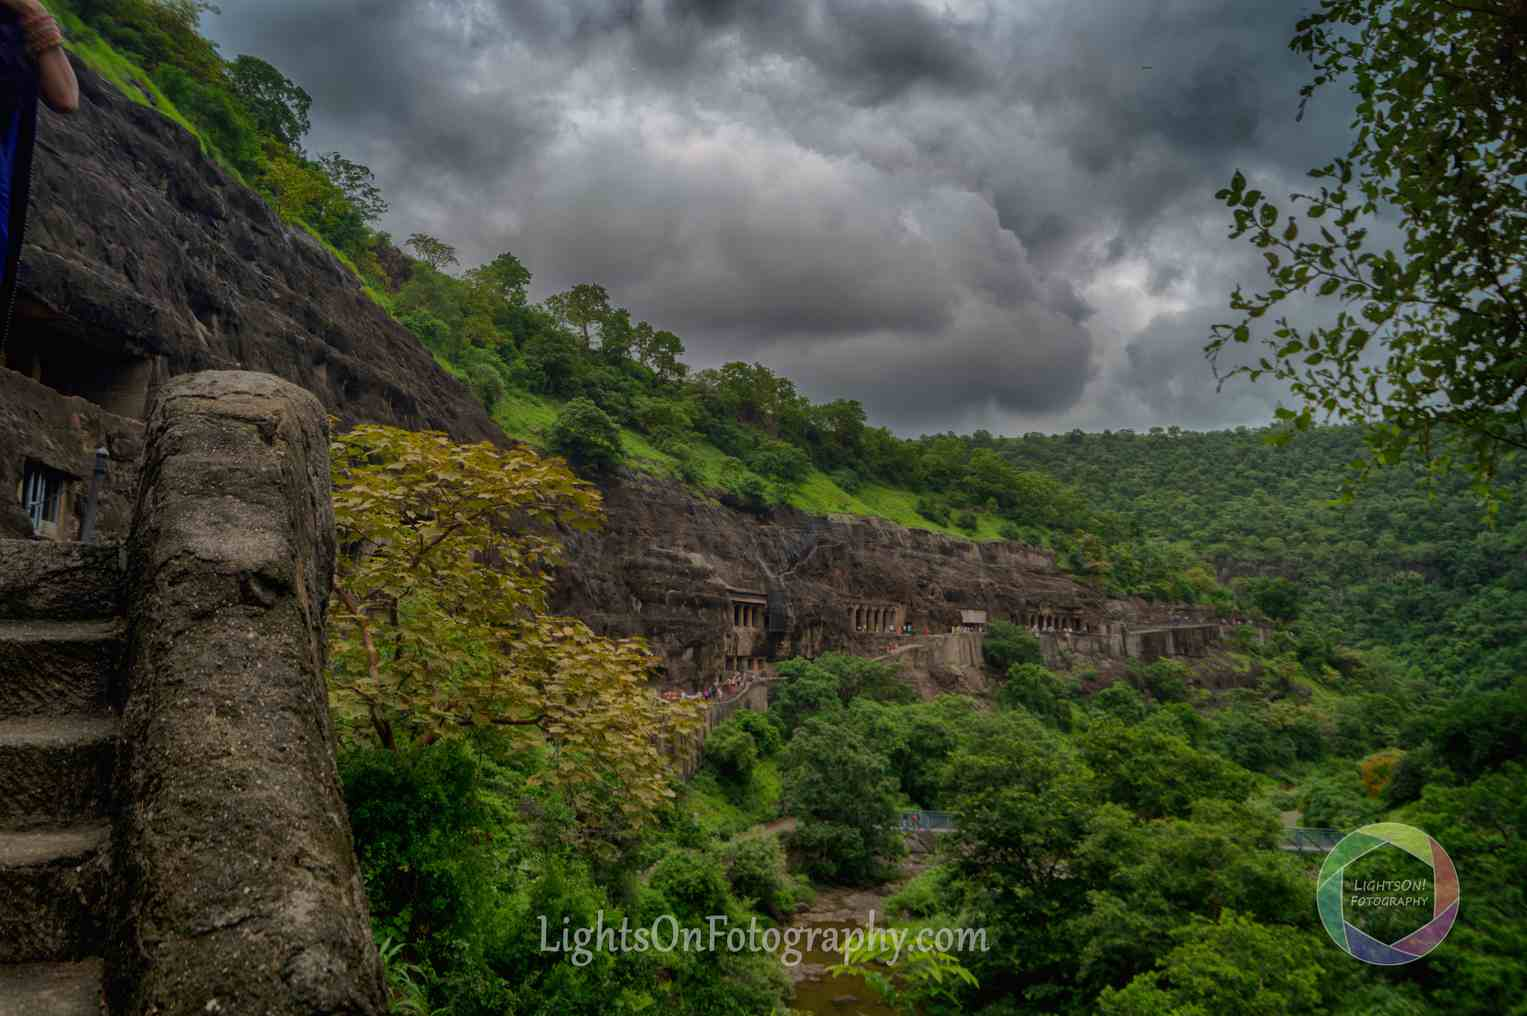 Ajantha caves unexplored heritage from ancient history.